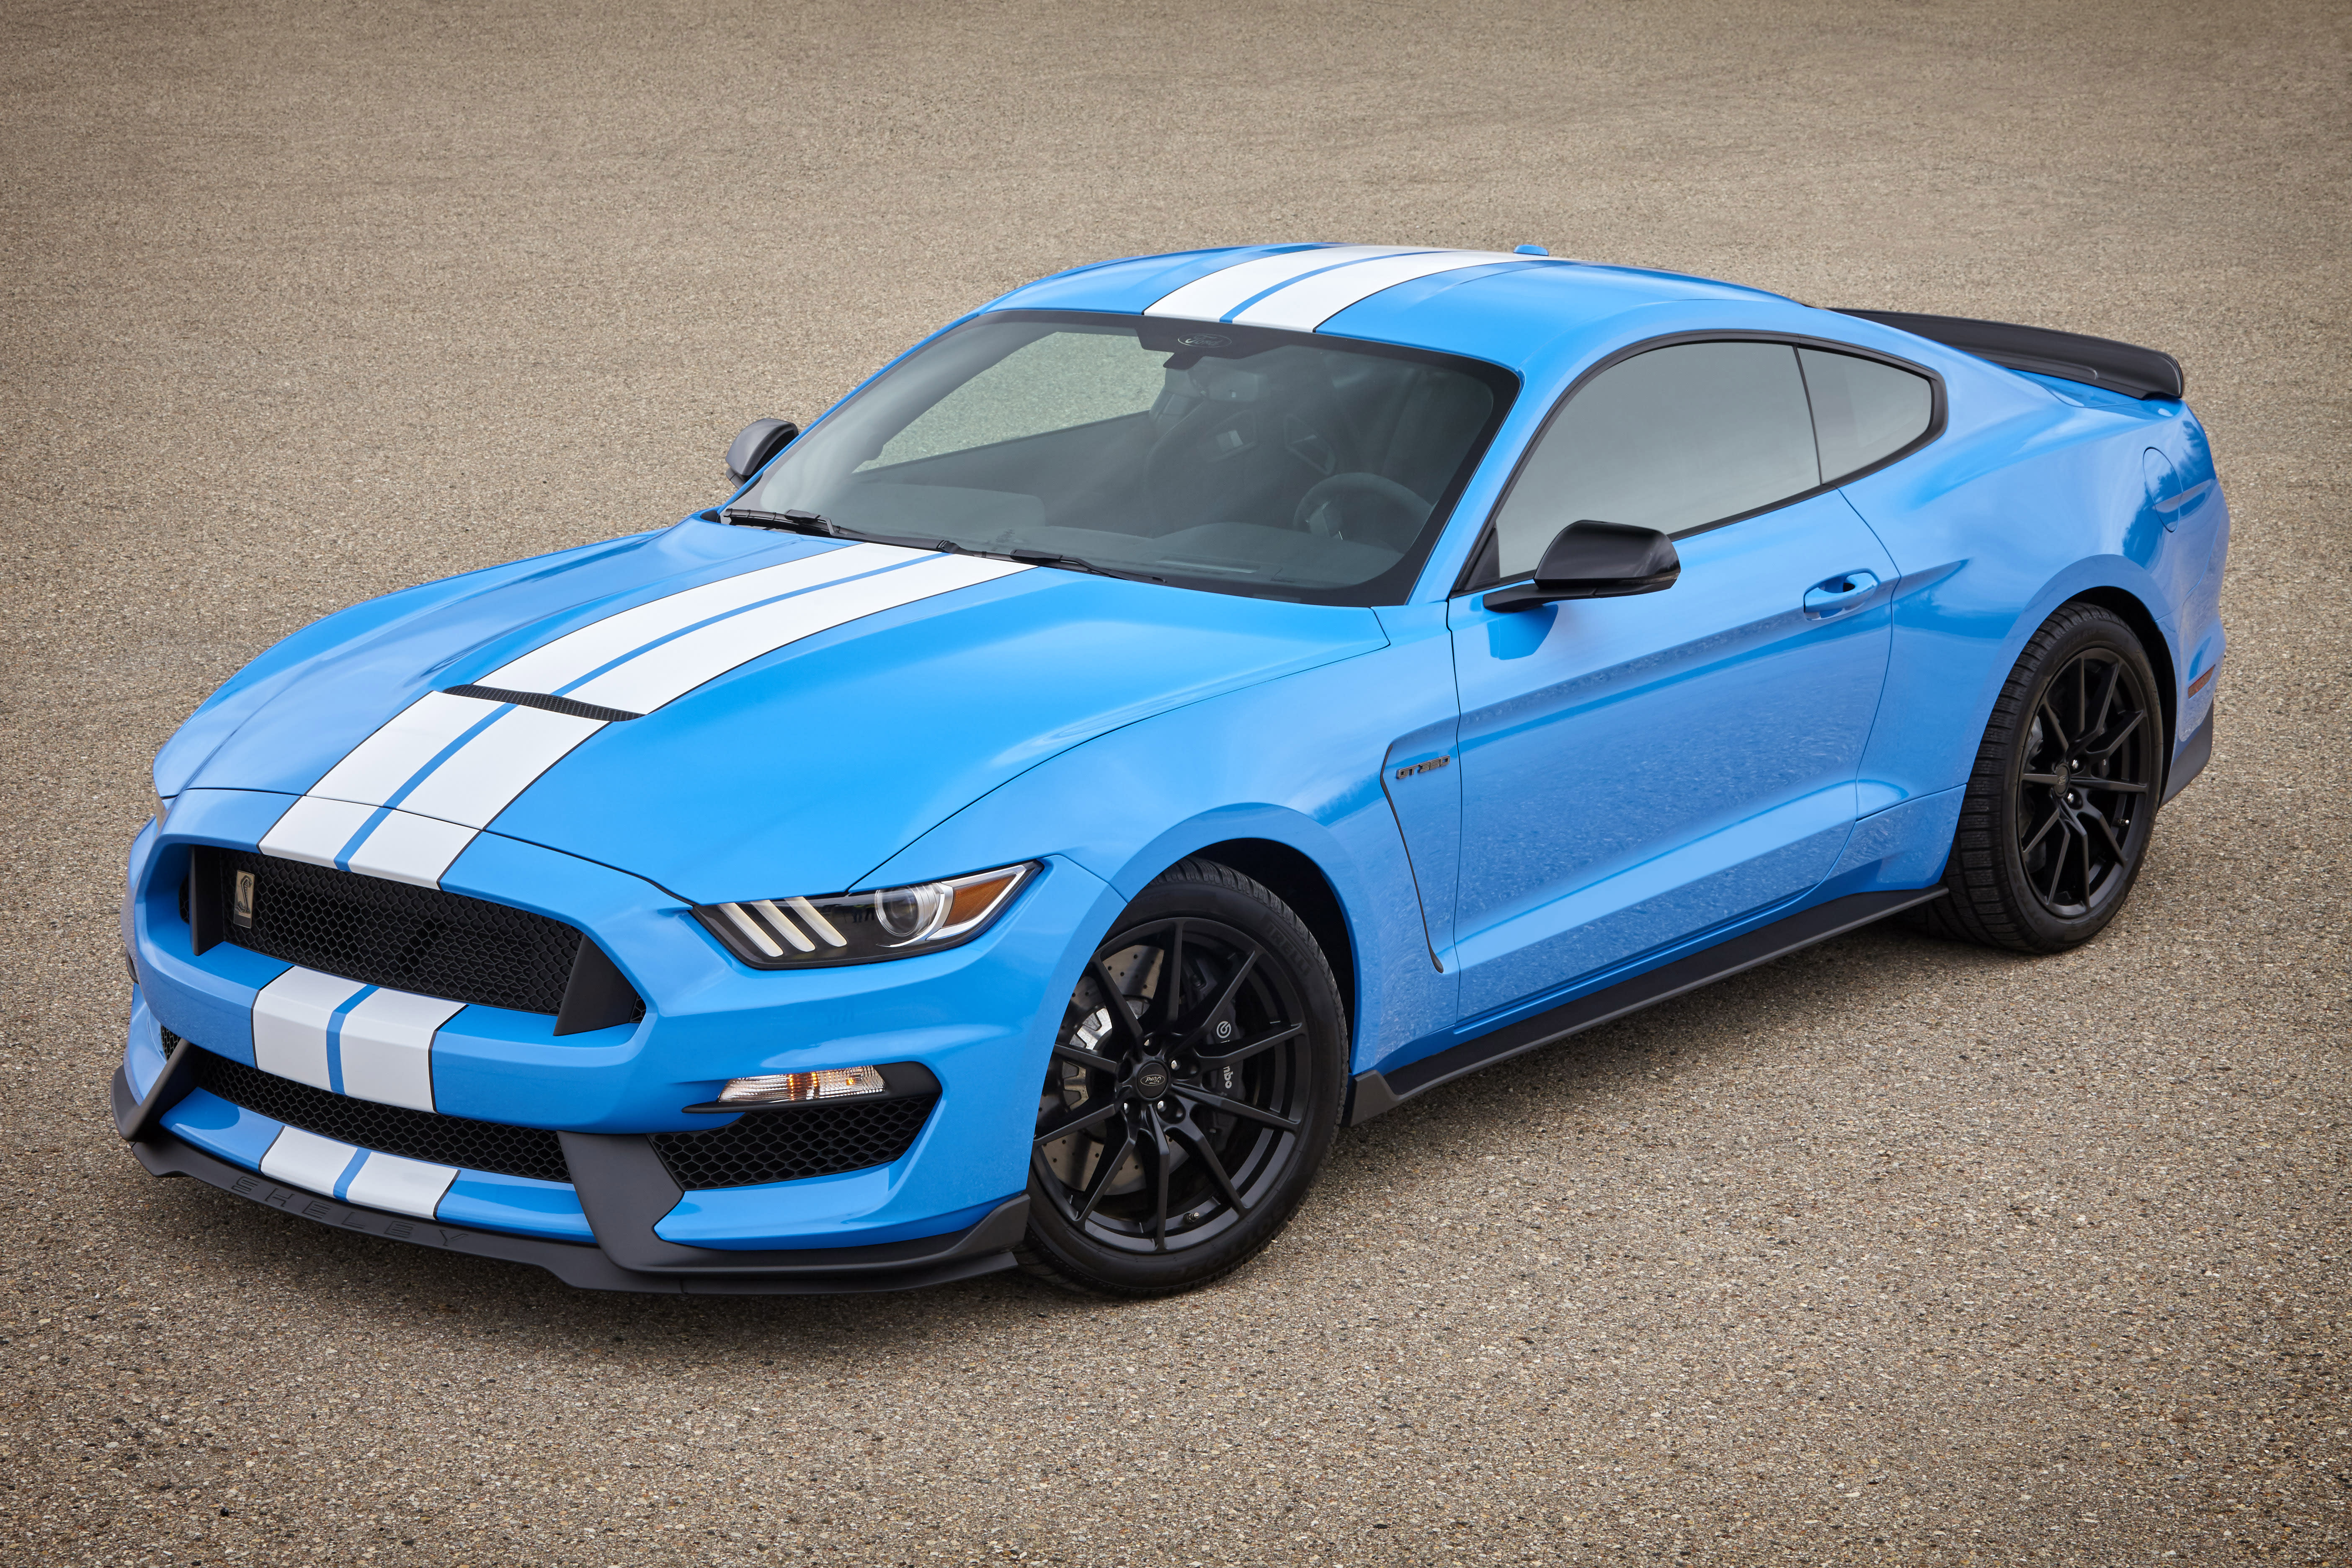 2017 Ford Shelby Gt350 In Grabber Blue Credit